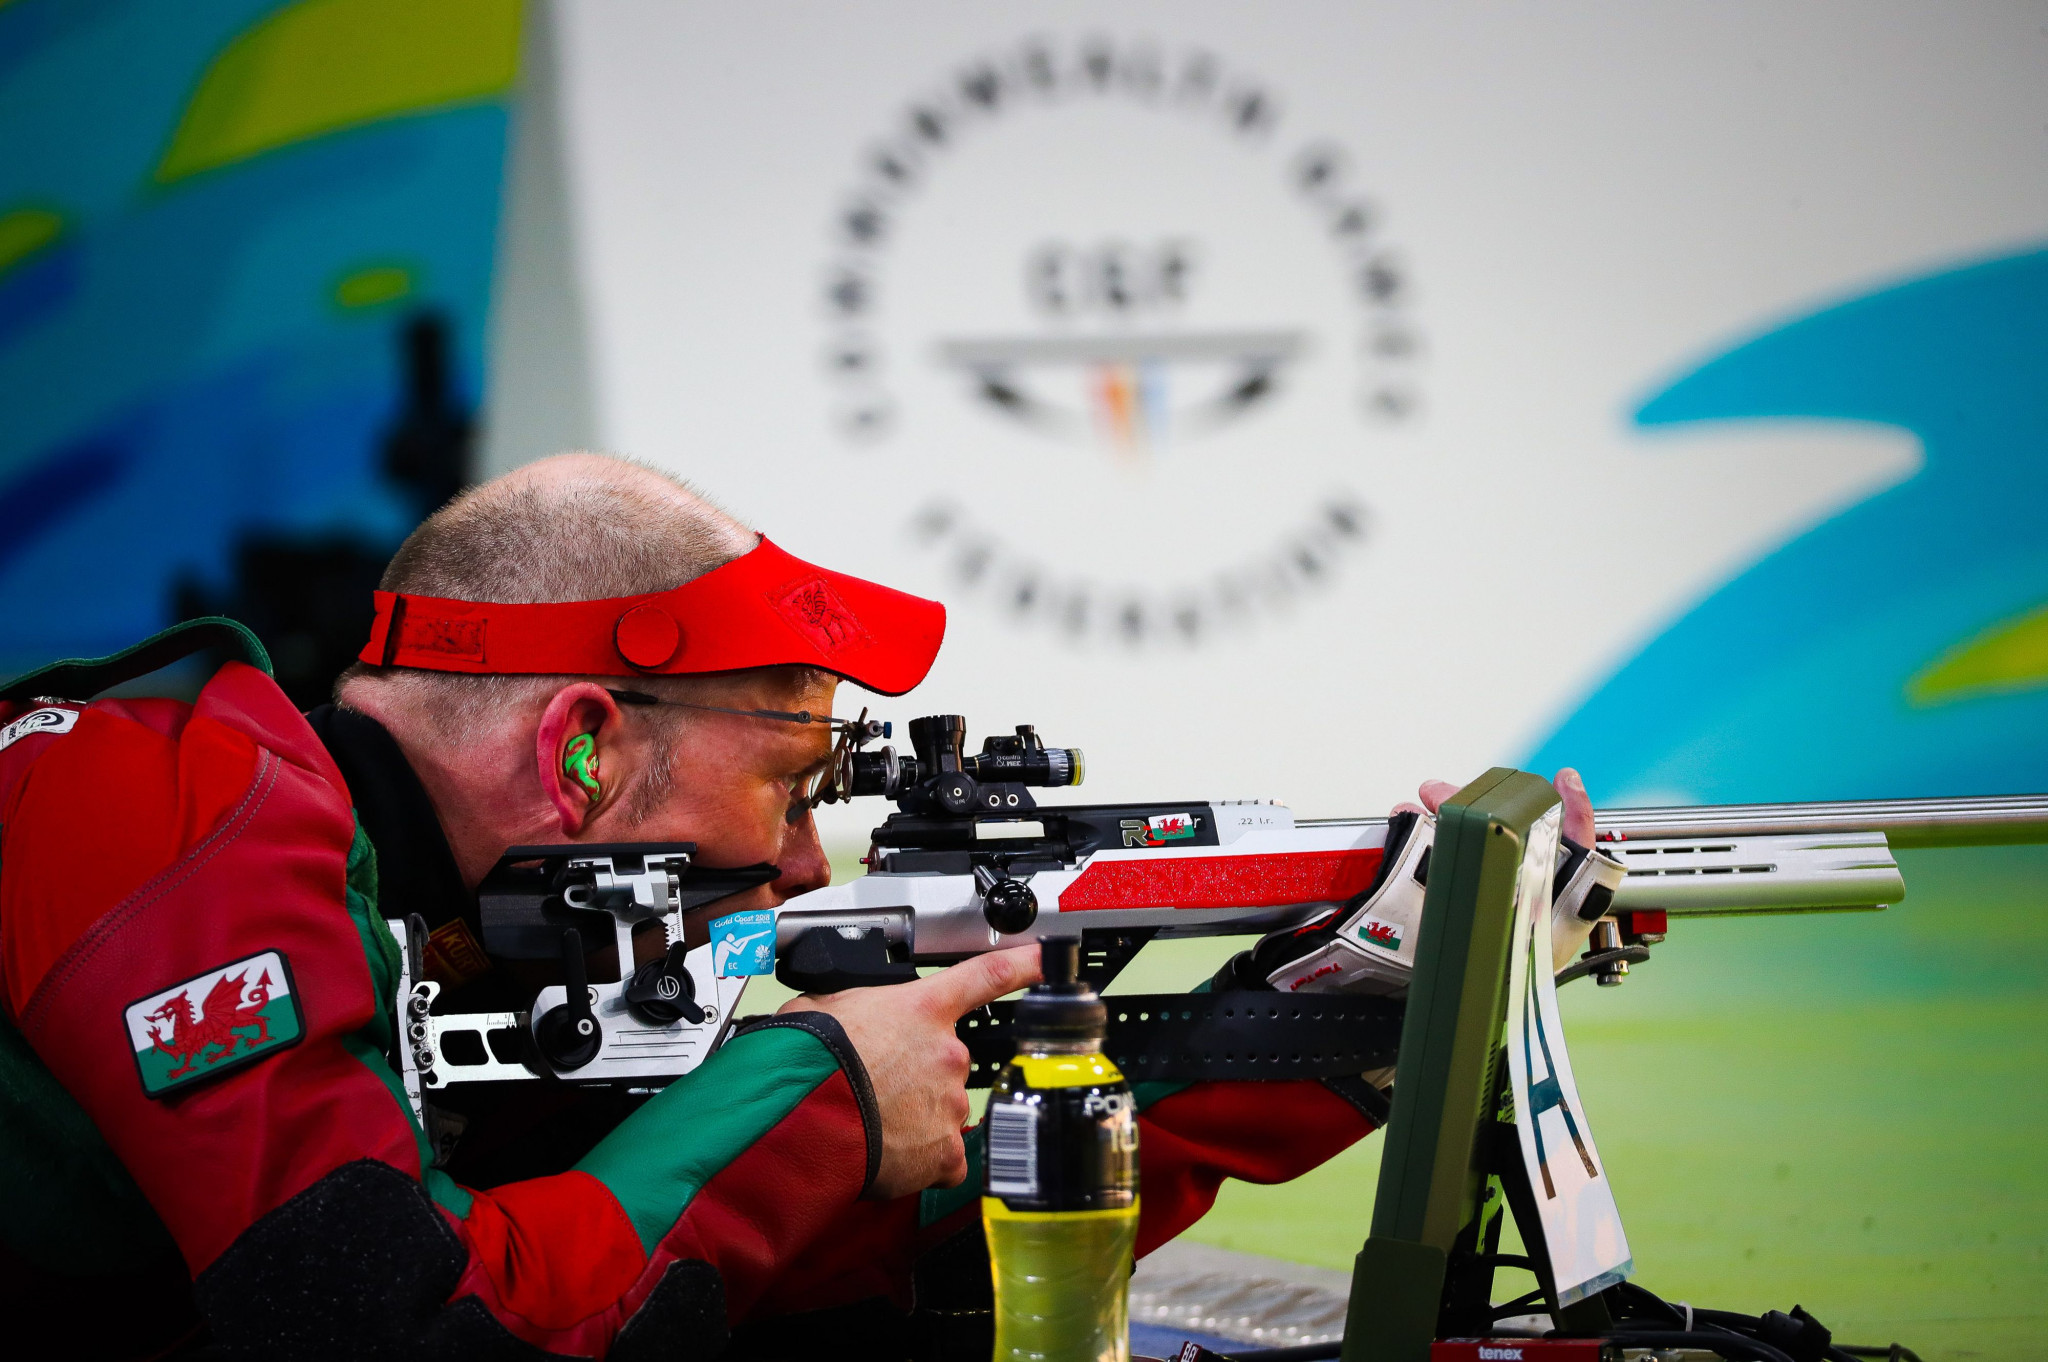 Wales' David Phelps marked his 41st birthday in style as he won the men's 50 metres rifle prone shooting event today at the Gold Coast 2018 Commonwealth Games ©Getty Images